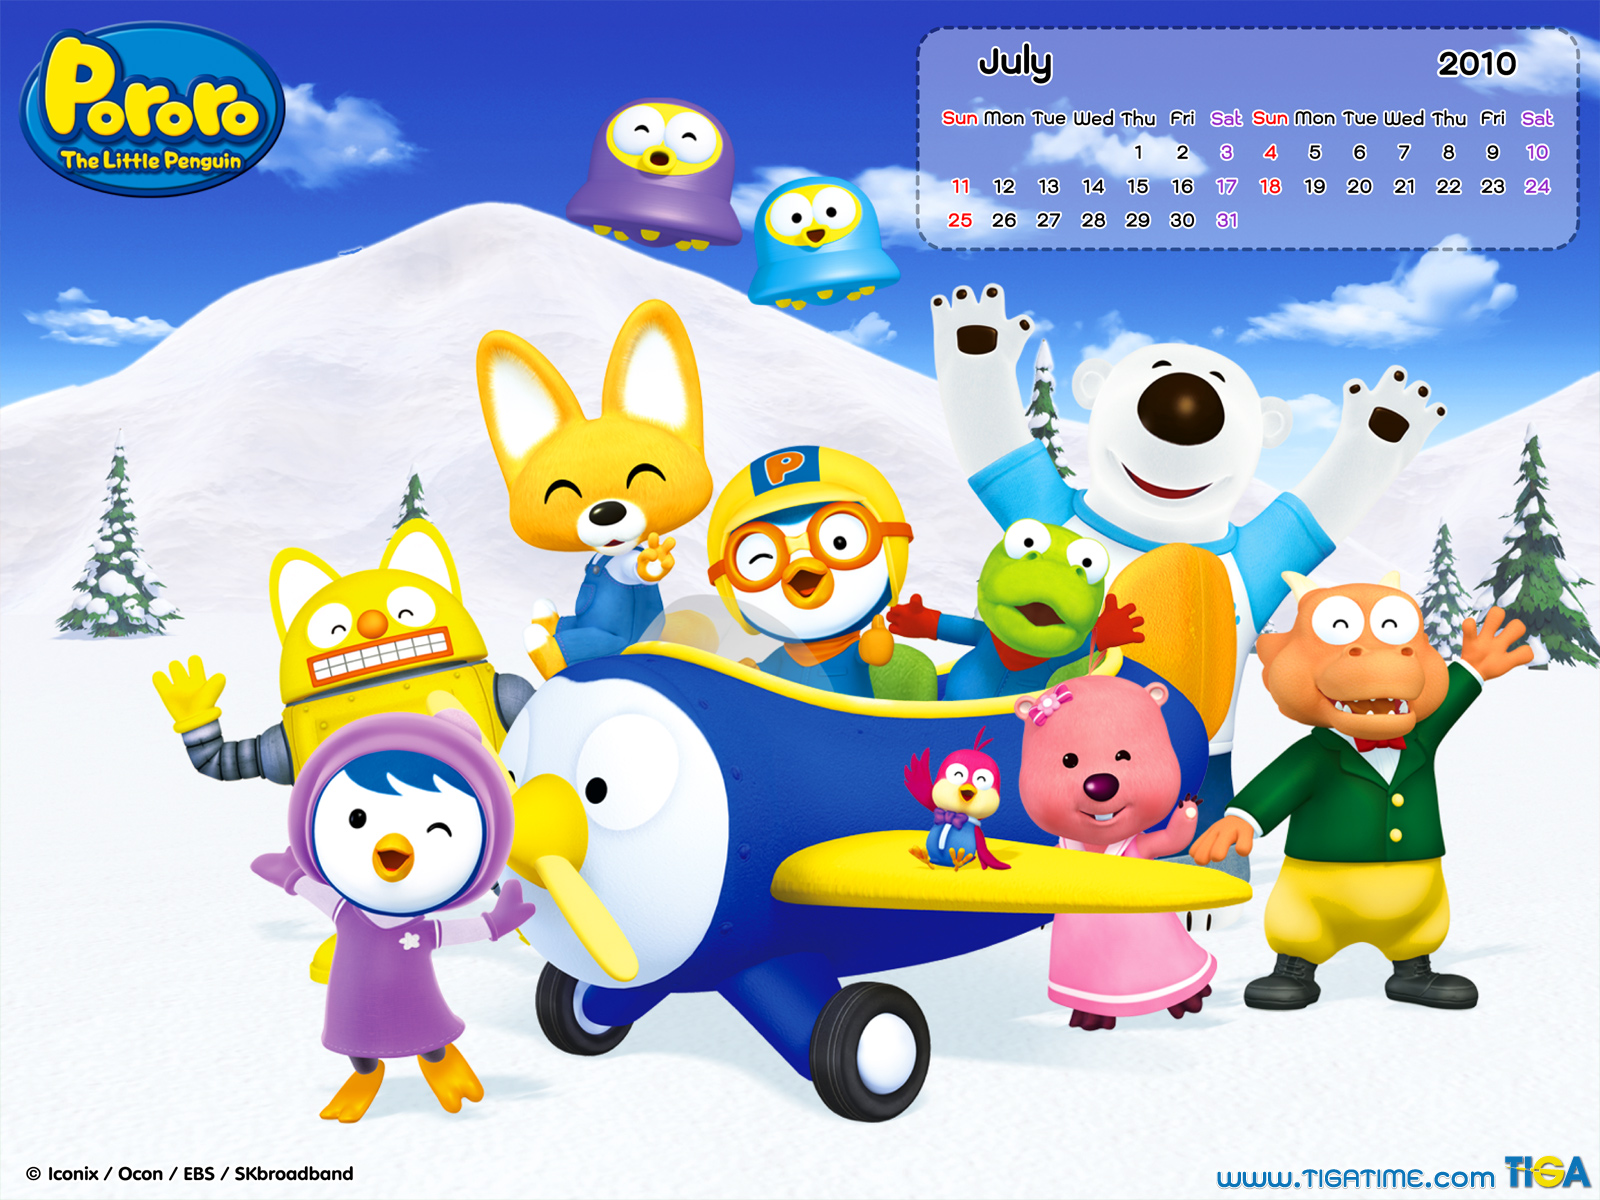 Korean sociological image 61 stereotypical gender roles in pororo source altavistaventures Image collections